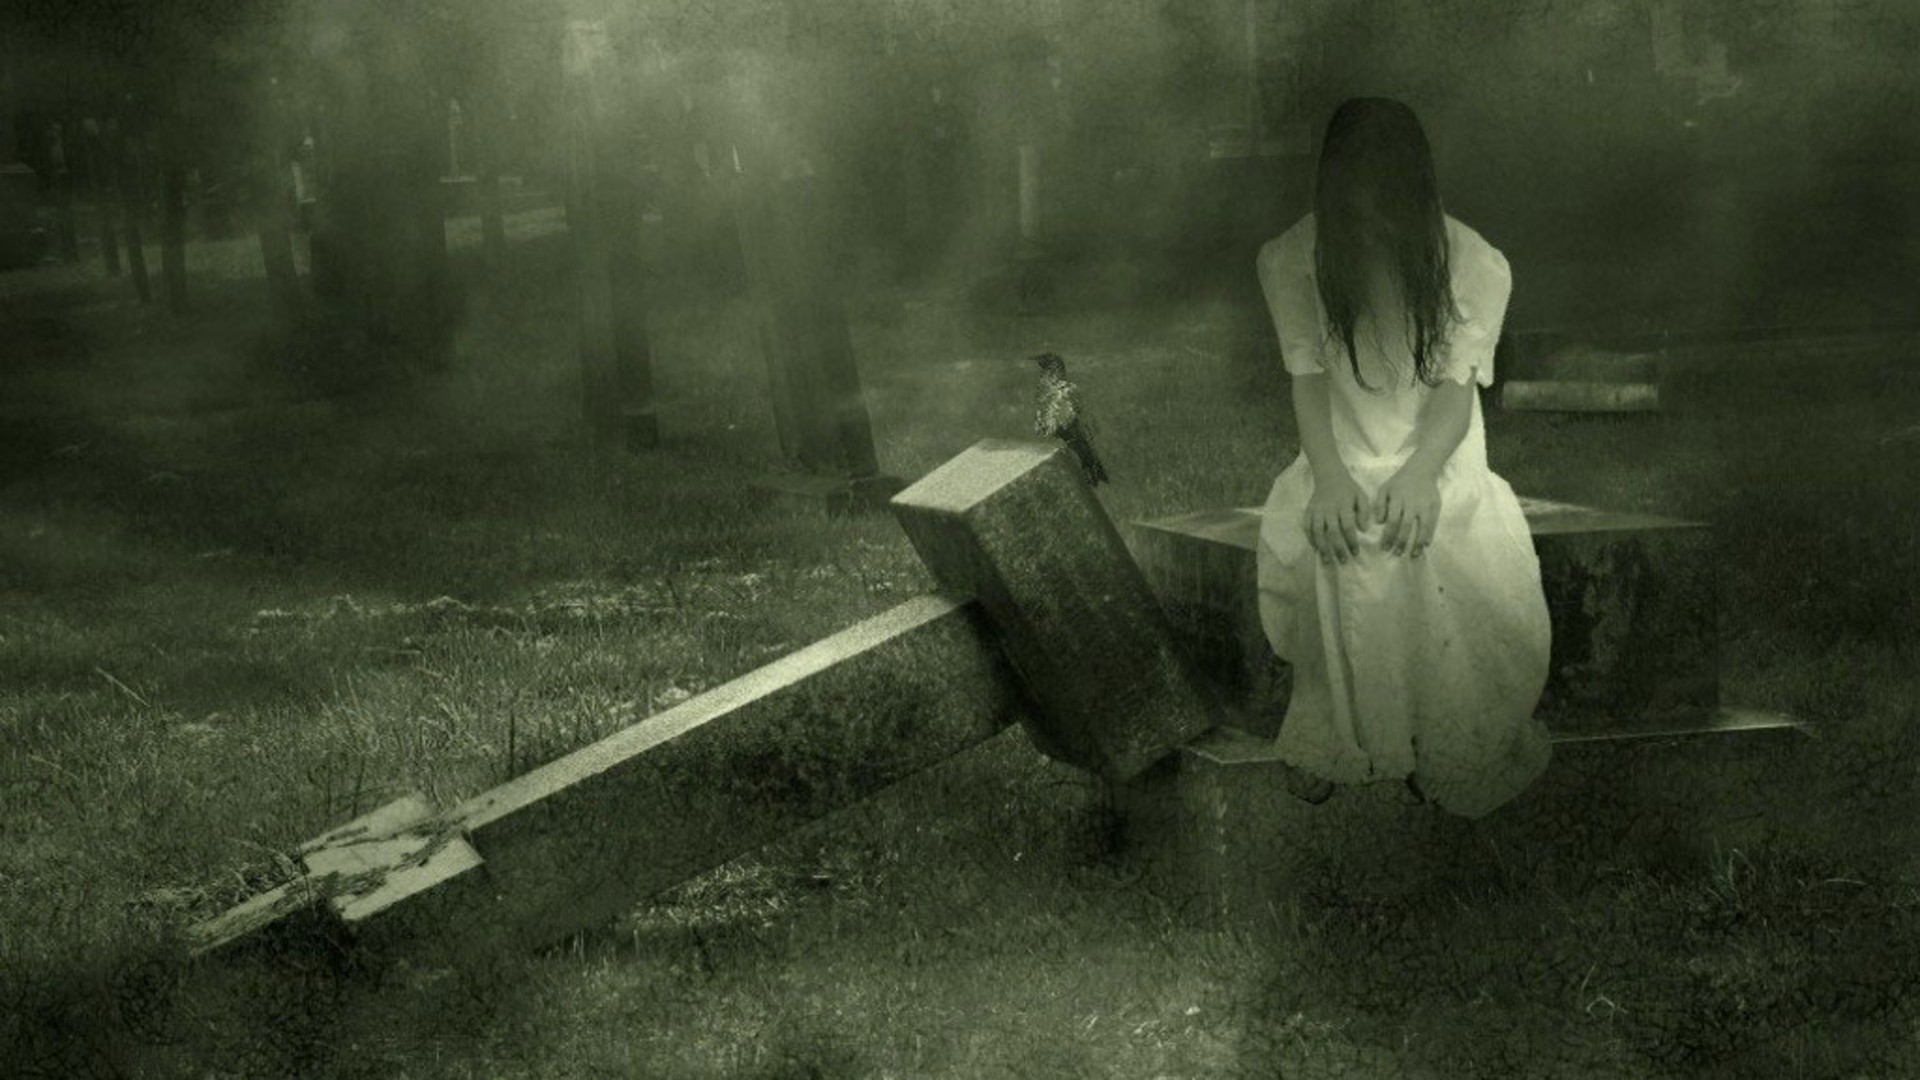 1920x1080 Creepy HD Wallpaper | Background Image |  | ID:463066 - Wallpaper  Abyss